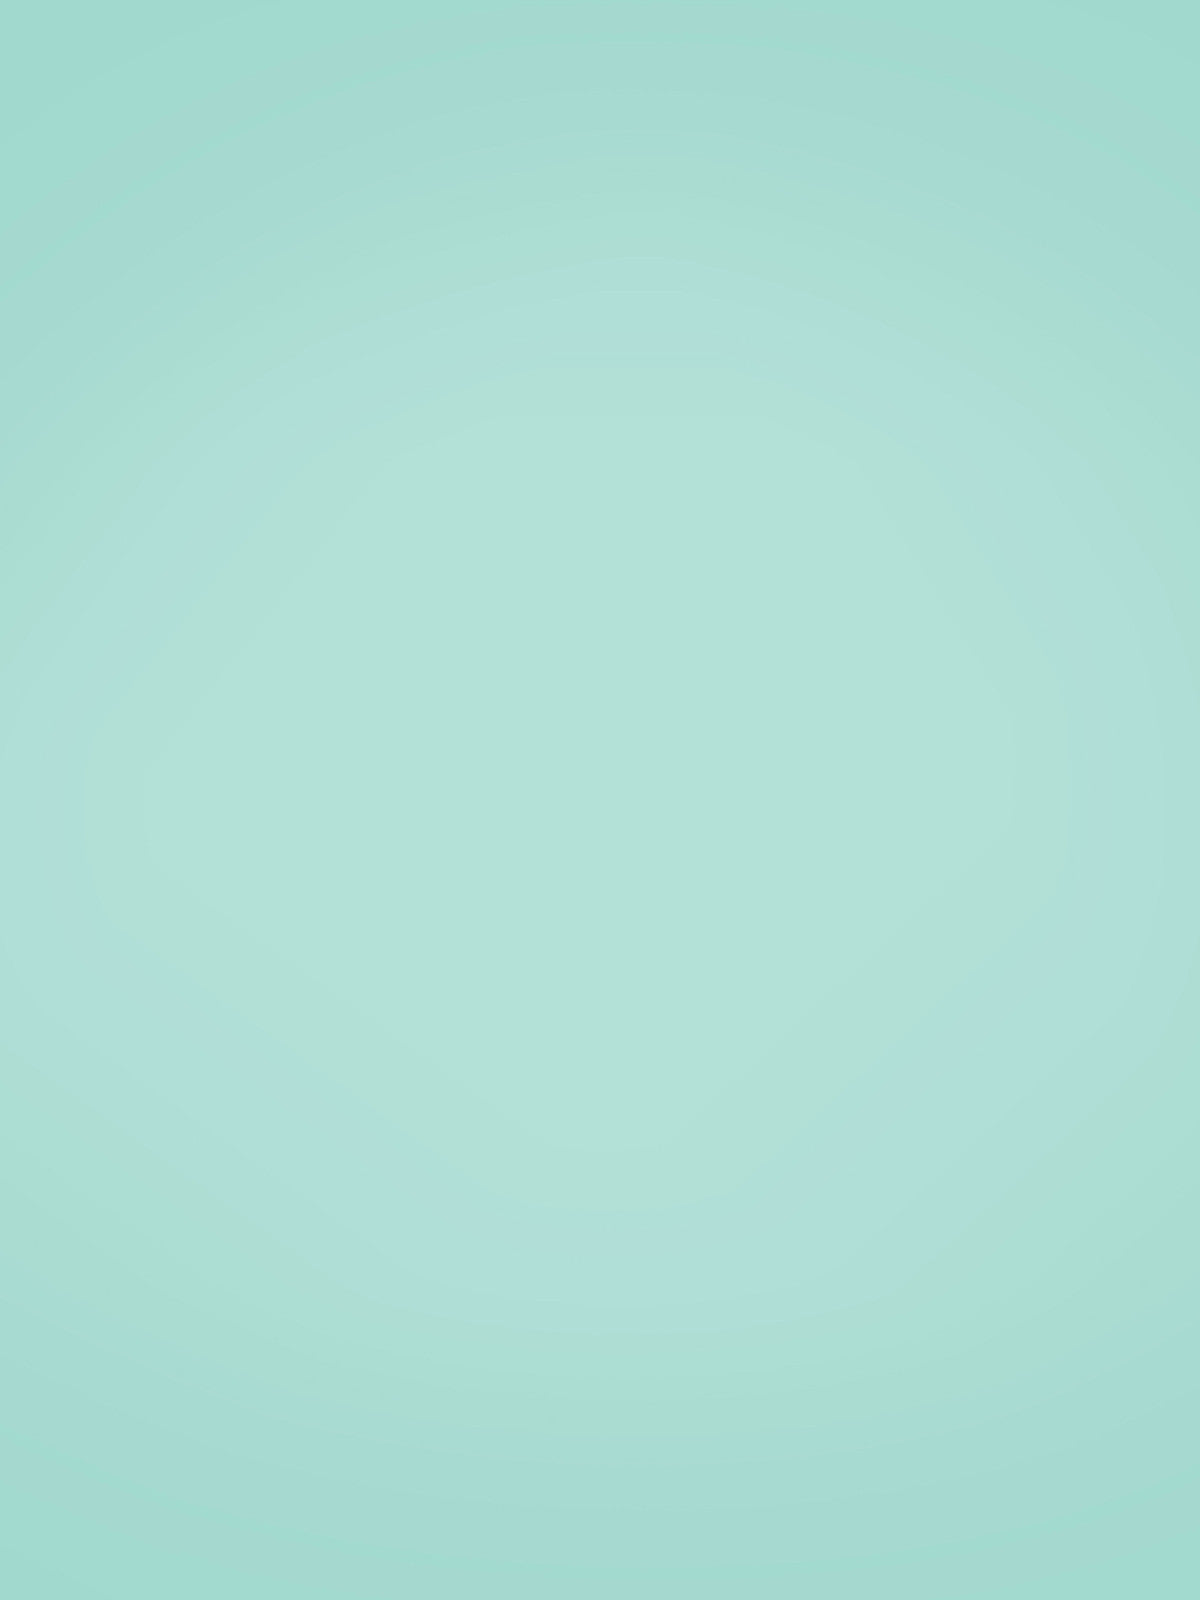 Teal Solid Printed Photo Backdrop / 9104 - DropPlace